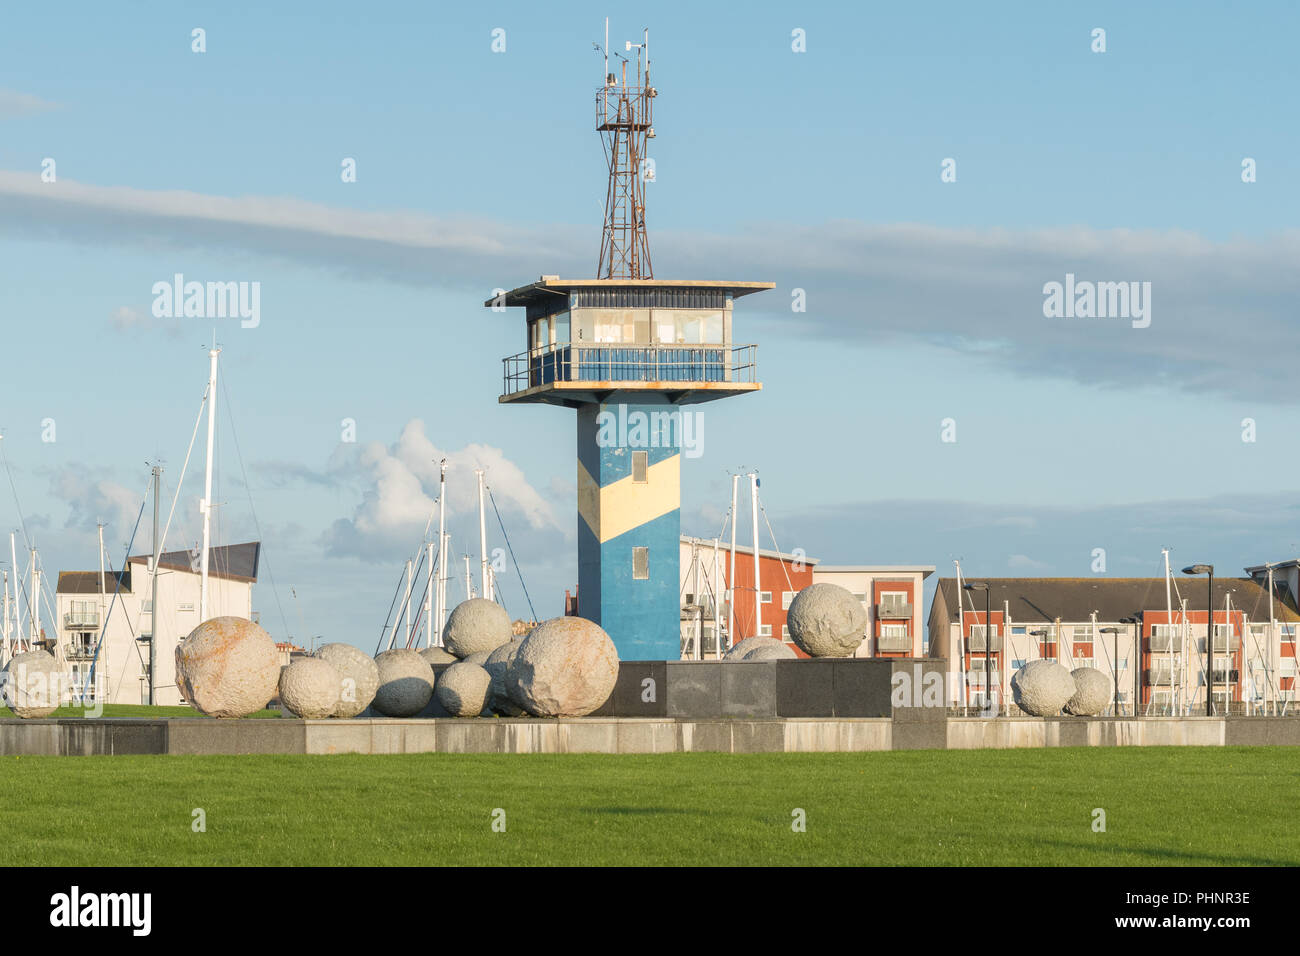 Ardrossan harbour station development - harbour masters watchtower and 'Position and Appearance' granite sphere sculpture, Ardrossan, Scotland, UK - Stock Image